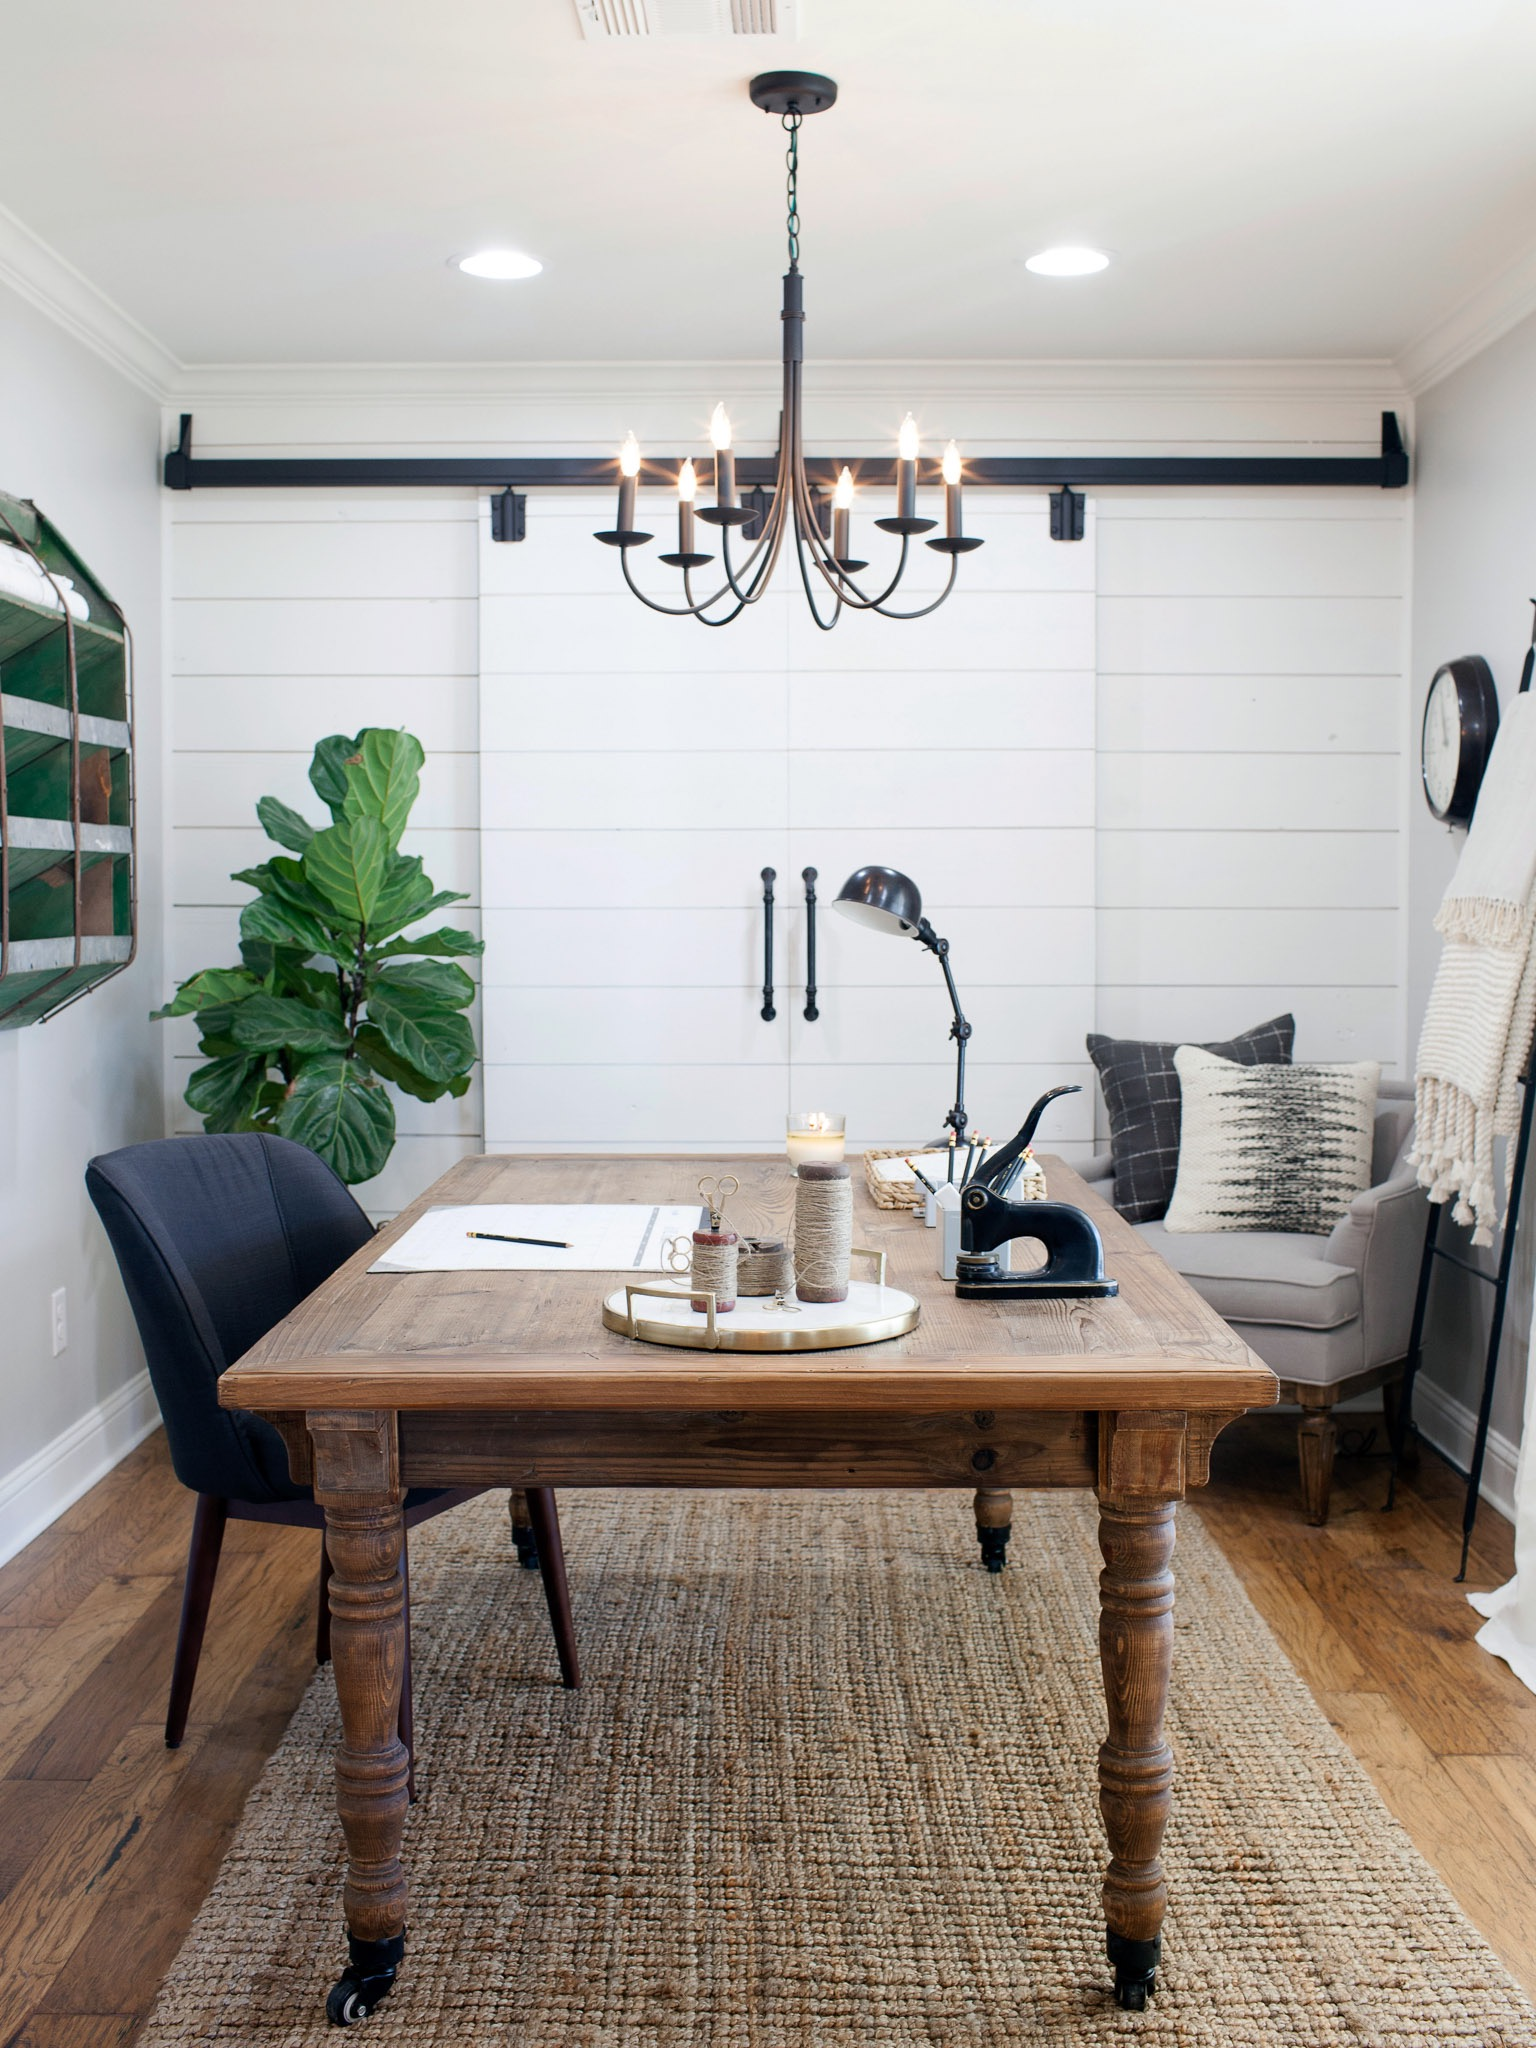 Rustic Home Office With Chandelier (View 40 of 50)